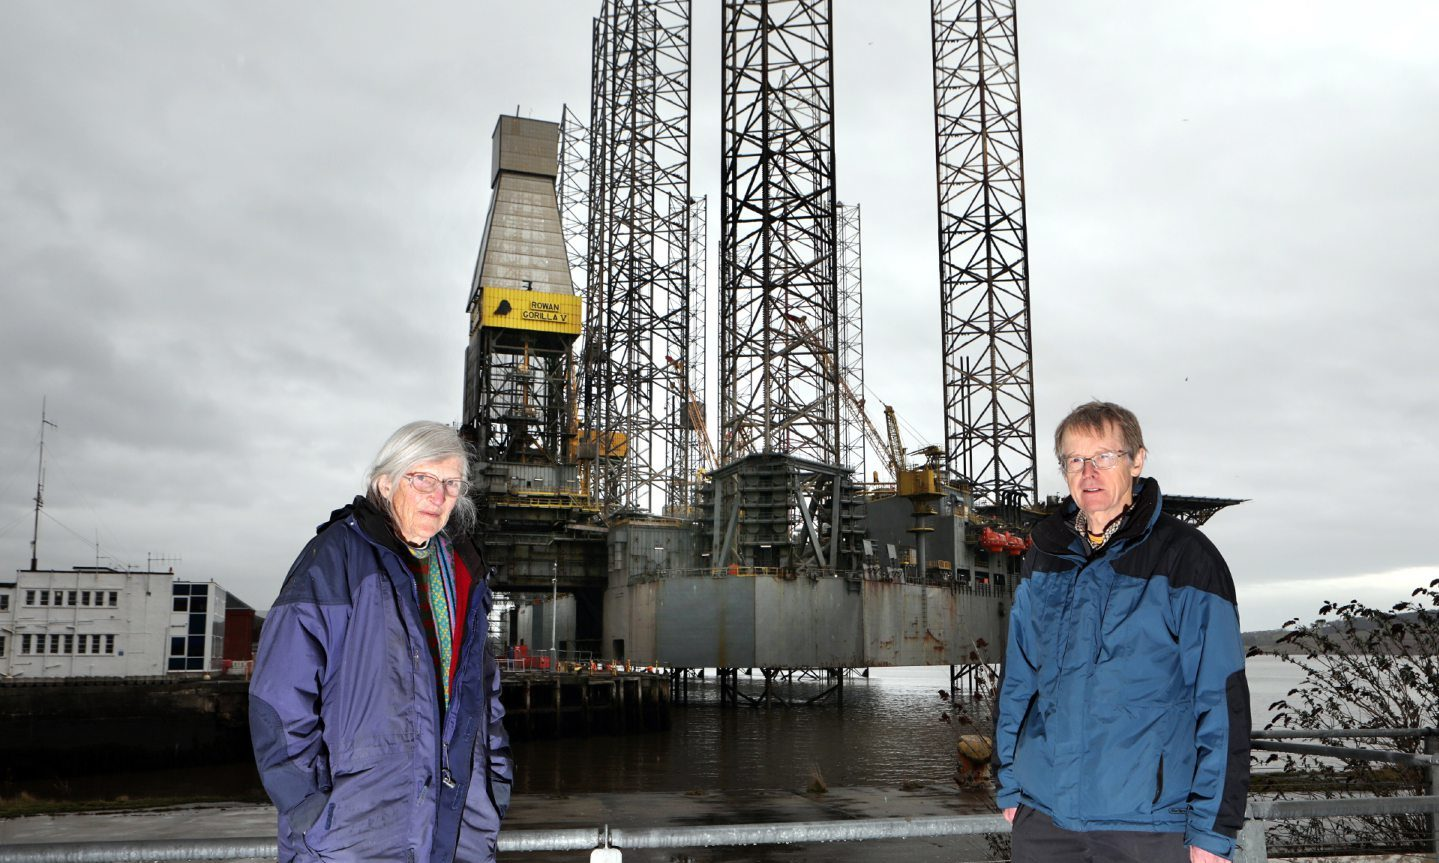 Andrew Llanwarne and Mary Henderson, from Friends of the Earth Tayside, are leading the campaign